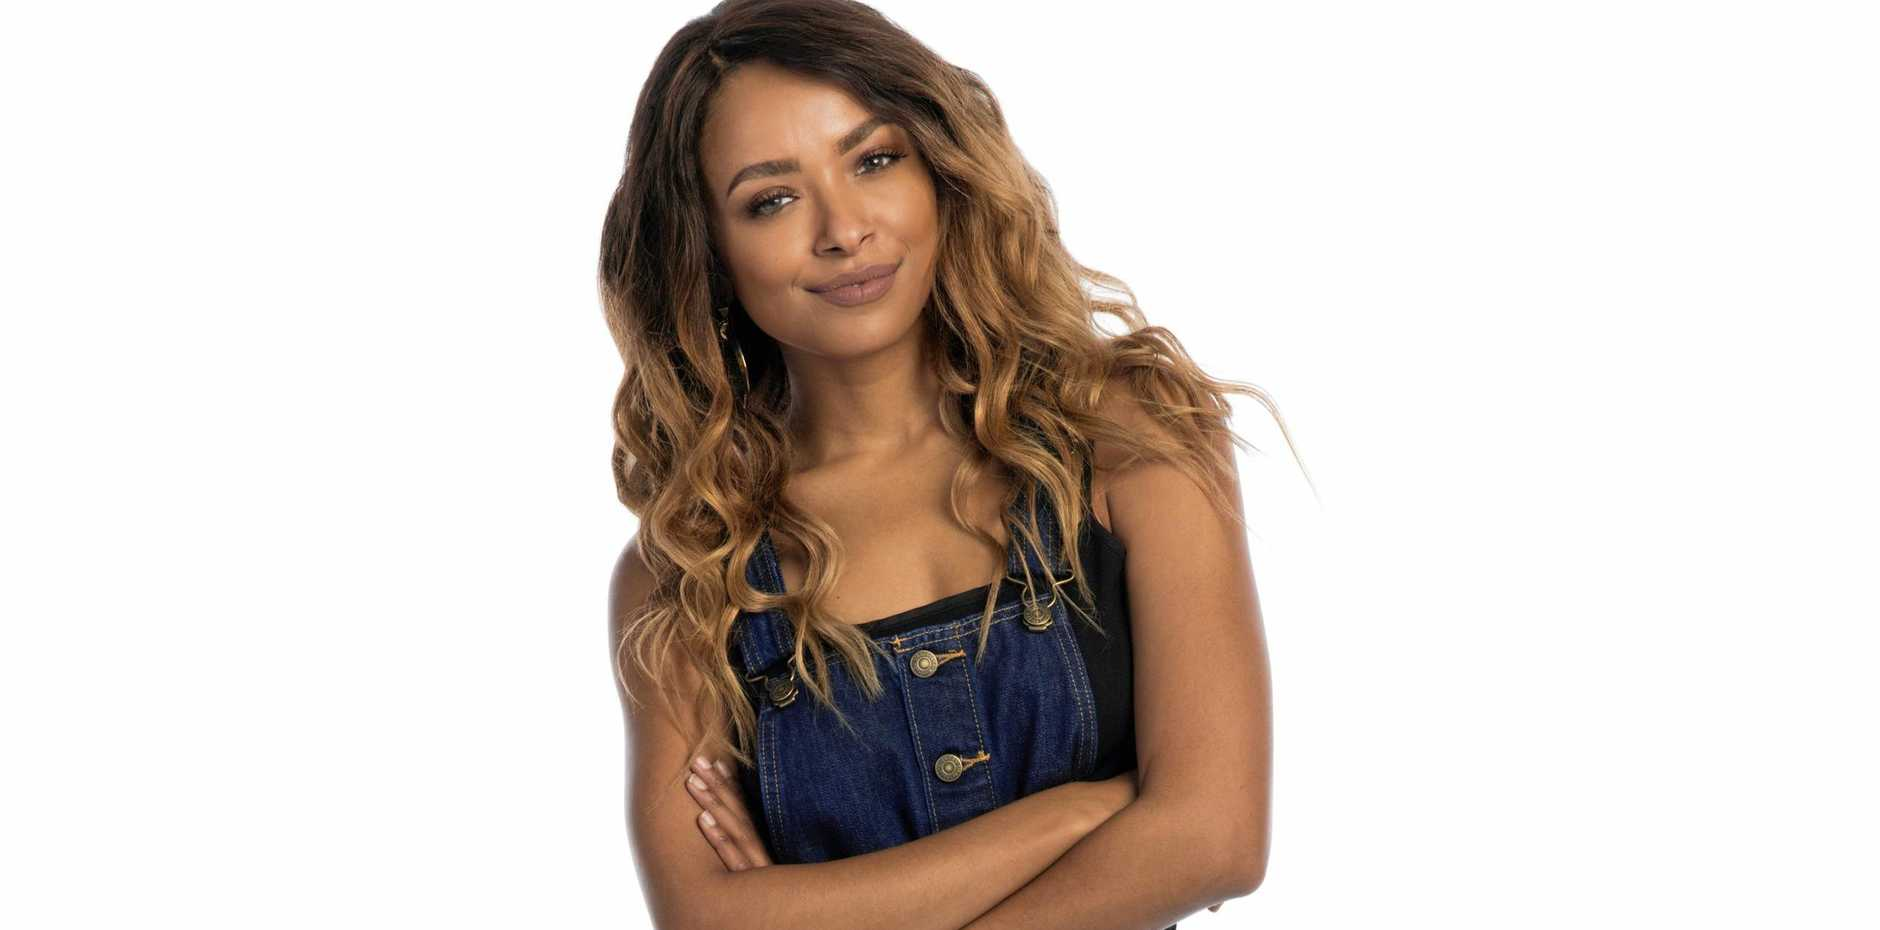 Kat Graham voices April O'Neal in the new TV series Rise of the Teenage Mutant Ninja Turtles.